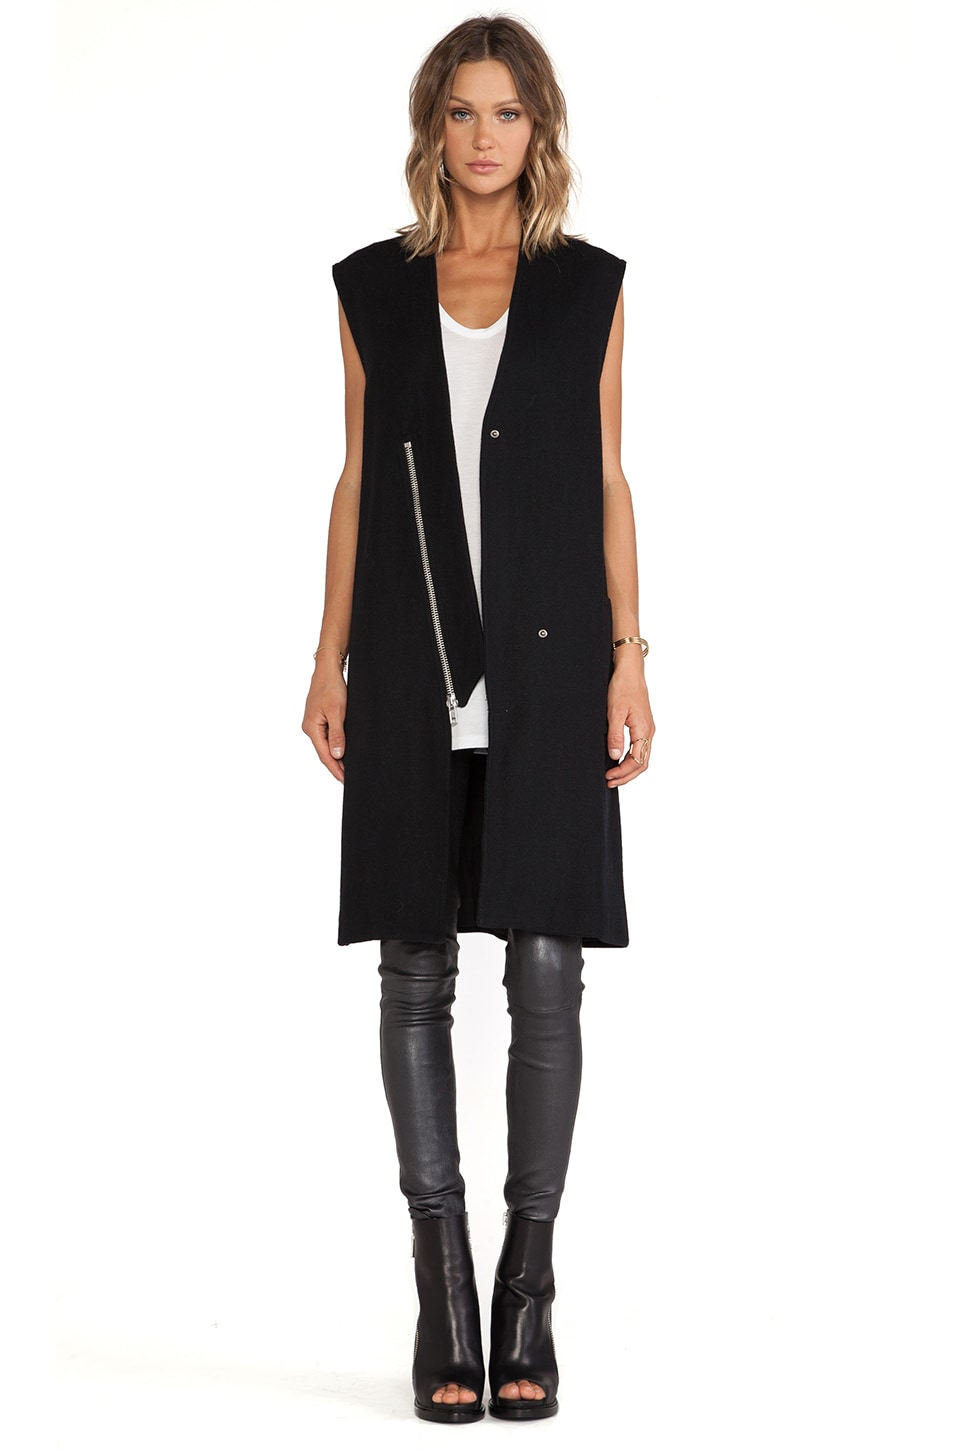 OAK Lapel Zip Vest in Black